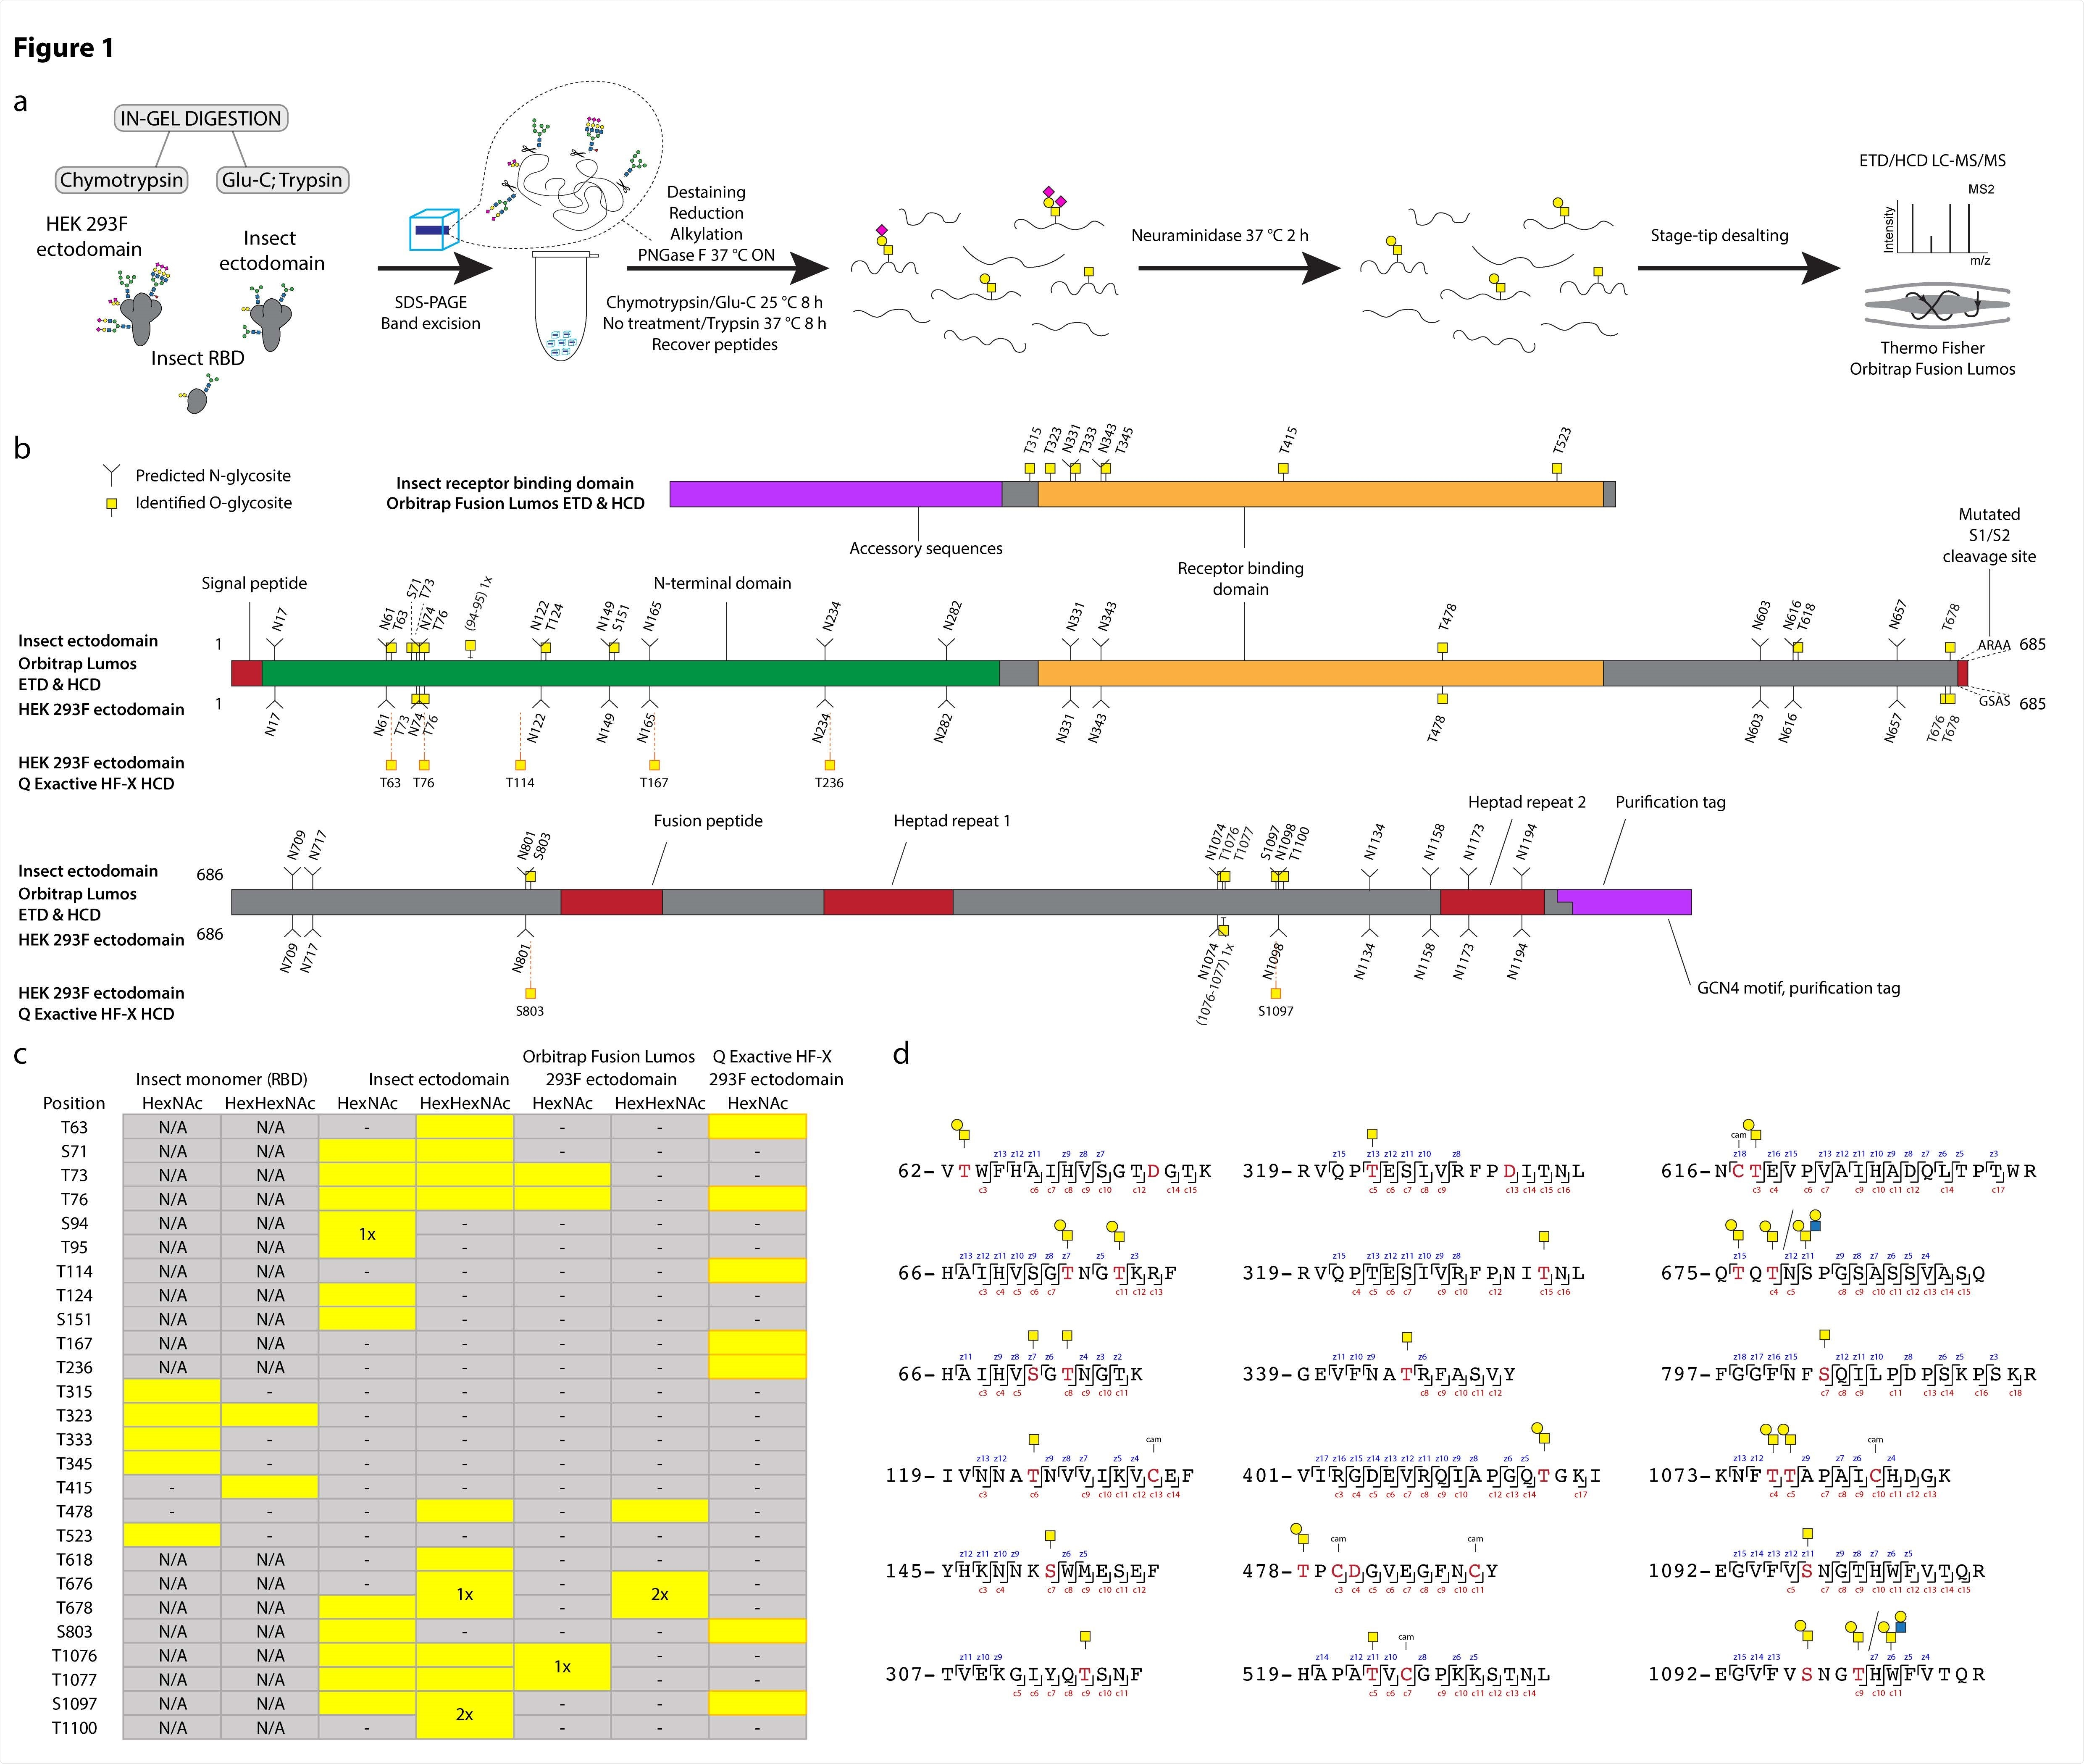 """O-glycosylation of SARS-CoV-2 spike protein expressed in insect or human cells. (a) Experimental strategy. (b) A graphical layout of spike protein sequence annotated with identified Oglycosylation sites using Orbitrap Lumos mass spectrometer with ETD and HCD MS2 fragmentation. Independently identified O-glycosites on HEK 293F-derived ectodomain using Q Exactive HF-X mass spectrometer with HCD MS2 fragmentation are shown with orange outlines. (c) A table summarizing O-glycosites and respective structures found in different S formulations (yellow rectangles). Ambiguous sites are shown as merged rectangles across several positions. """"N/A"""" - not applicable; """"-"""" - not detected. Orbitrap Fusion Lumos derived sites are marked with grey outlines. Additional sites identified on HEK 293F ectodomain with Q Exactive HF-X are marked with orange outlines. (d) Examples of O-glycopeptides identified with Orbitrap Fusion Lumos using ETD fragmentation. MS2 c and z product ion fragments are annotated based on the respective ETD spectra"""